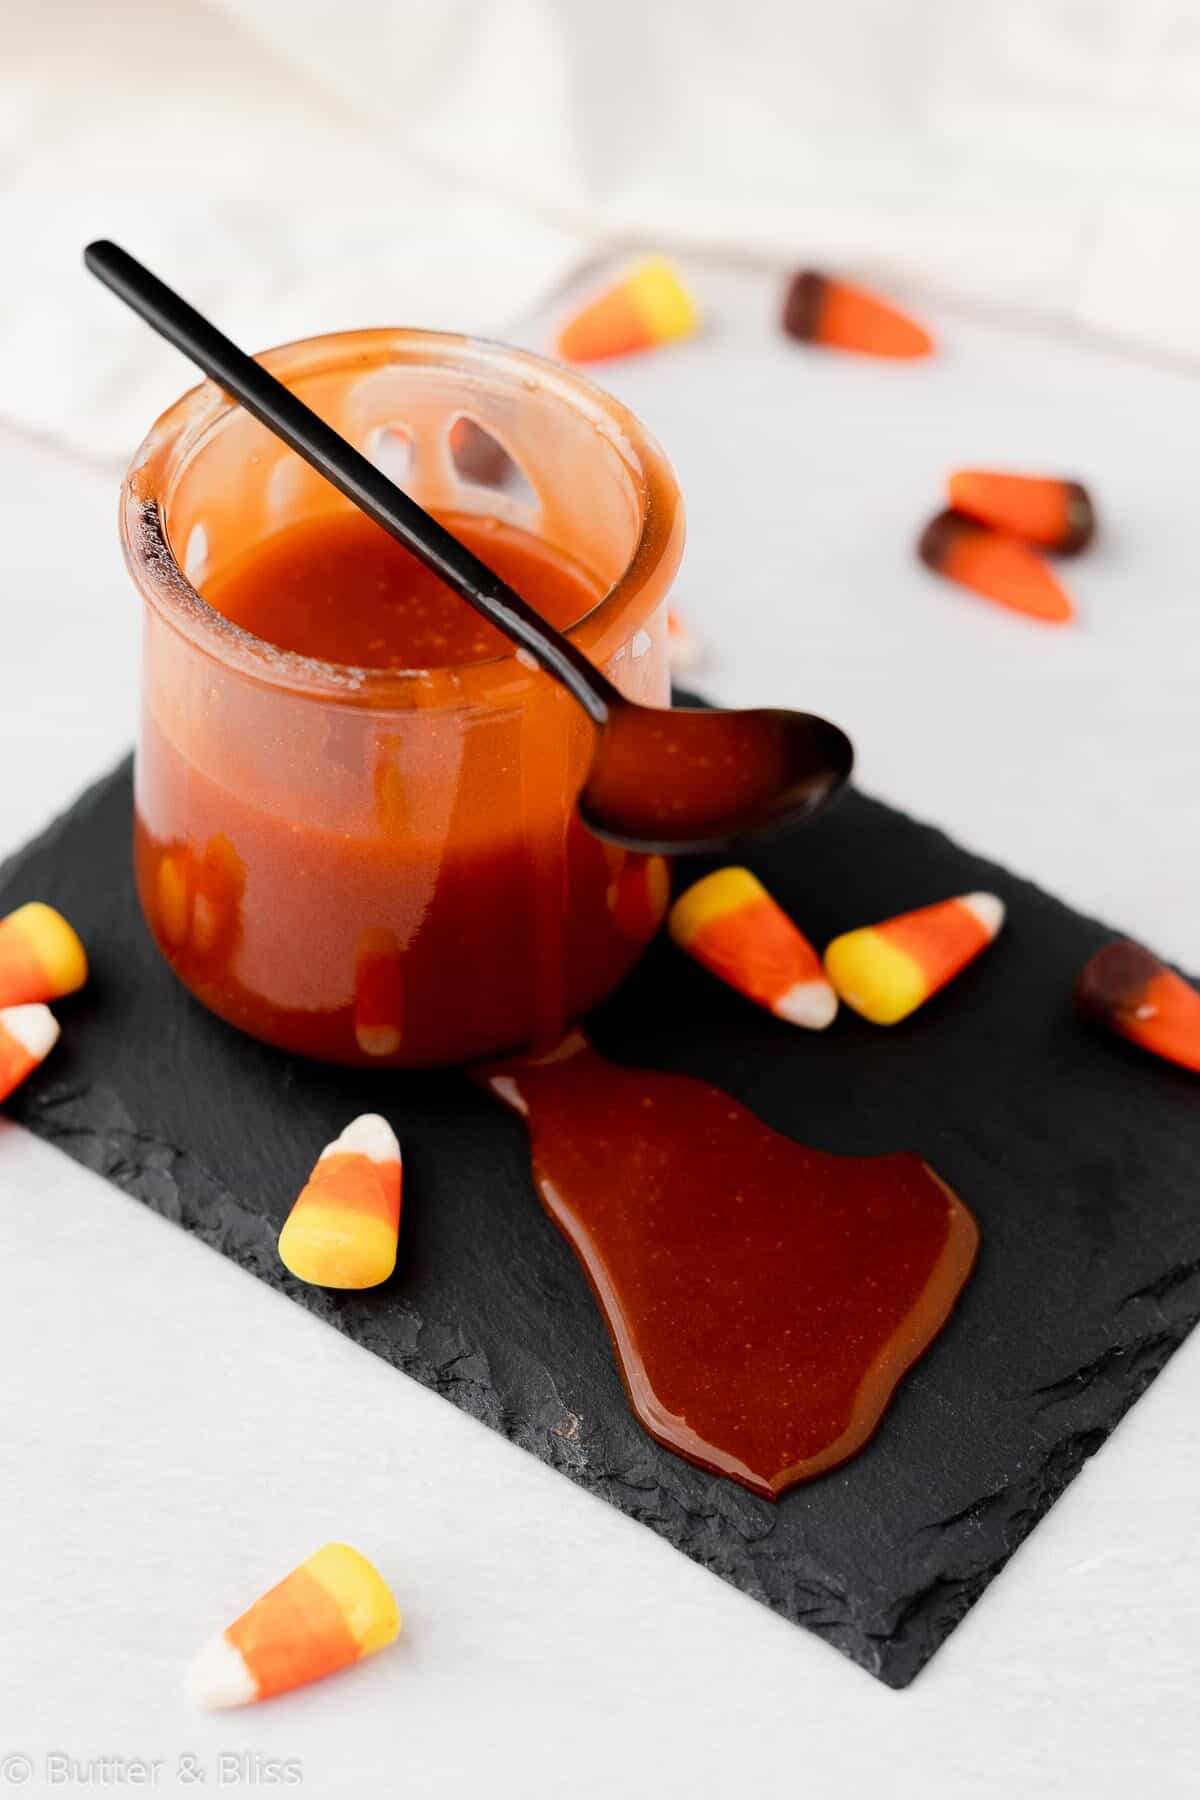 Candy corn caramel sauce in a small jar with a spoon